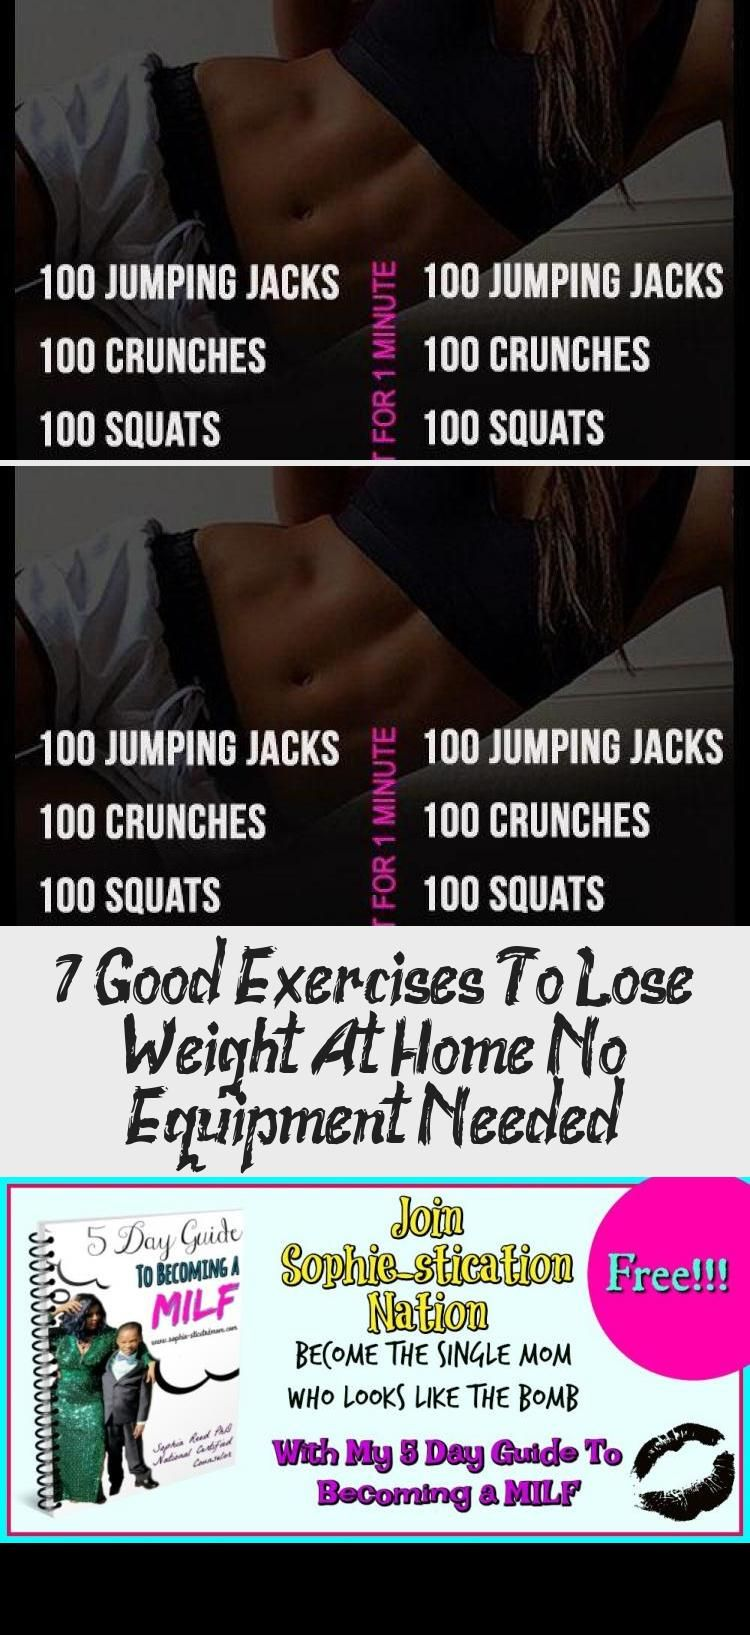 7 Good Exercises To Lose Weight At Home No Equipment Needed - Workout - GYM - Bodybuilding